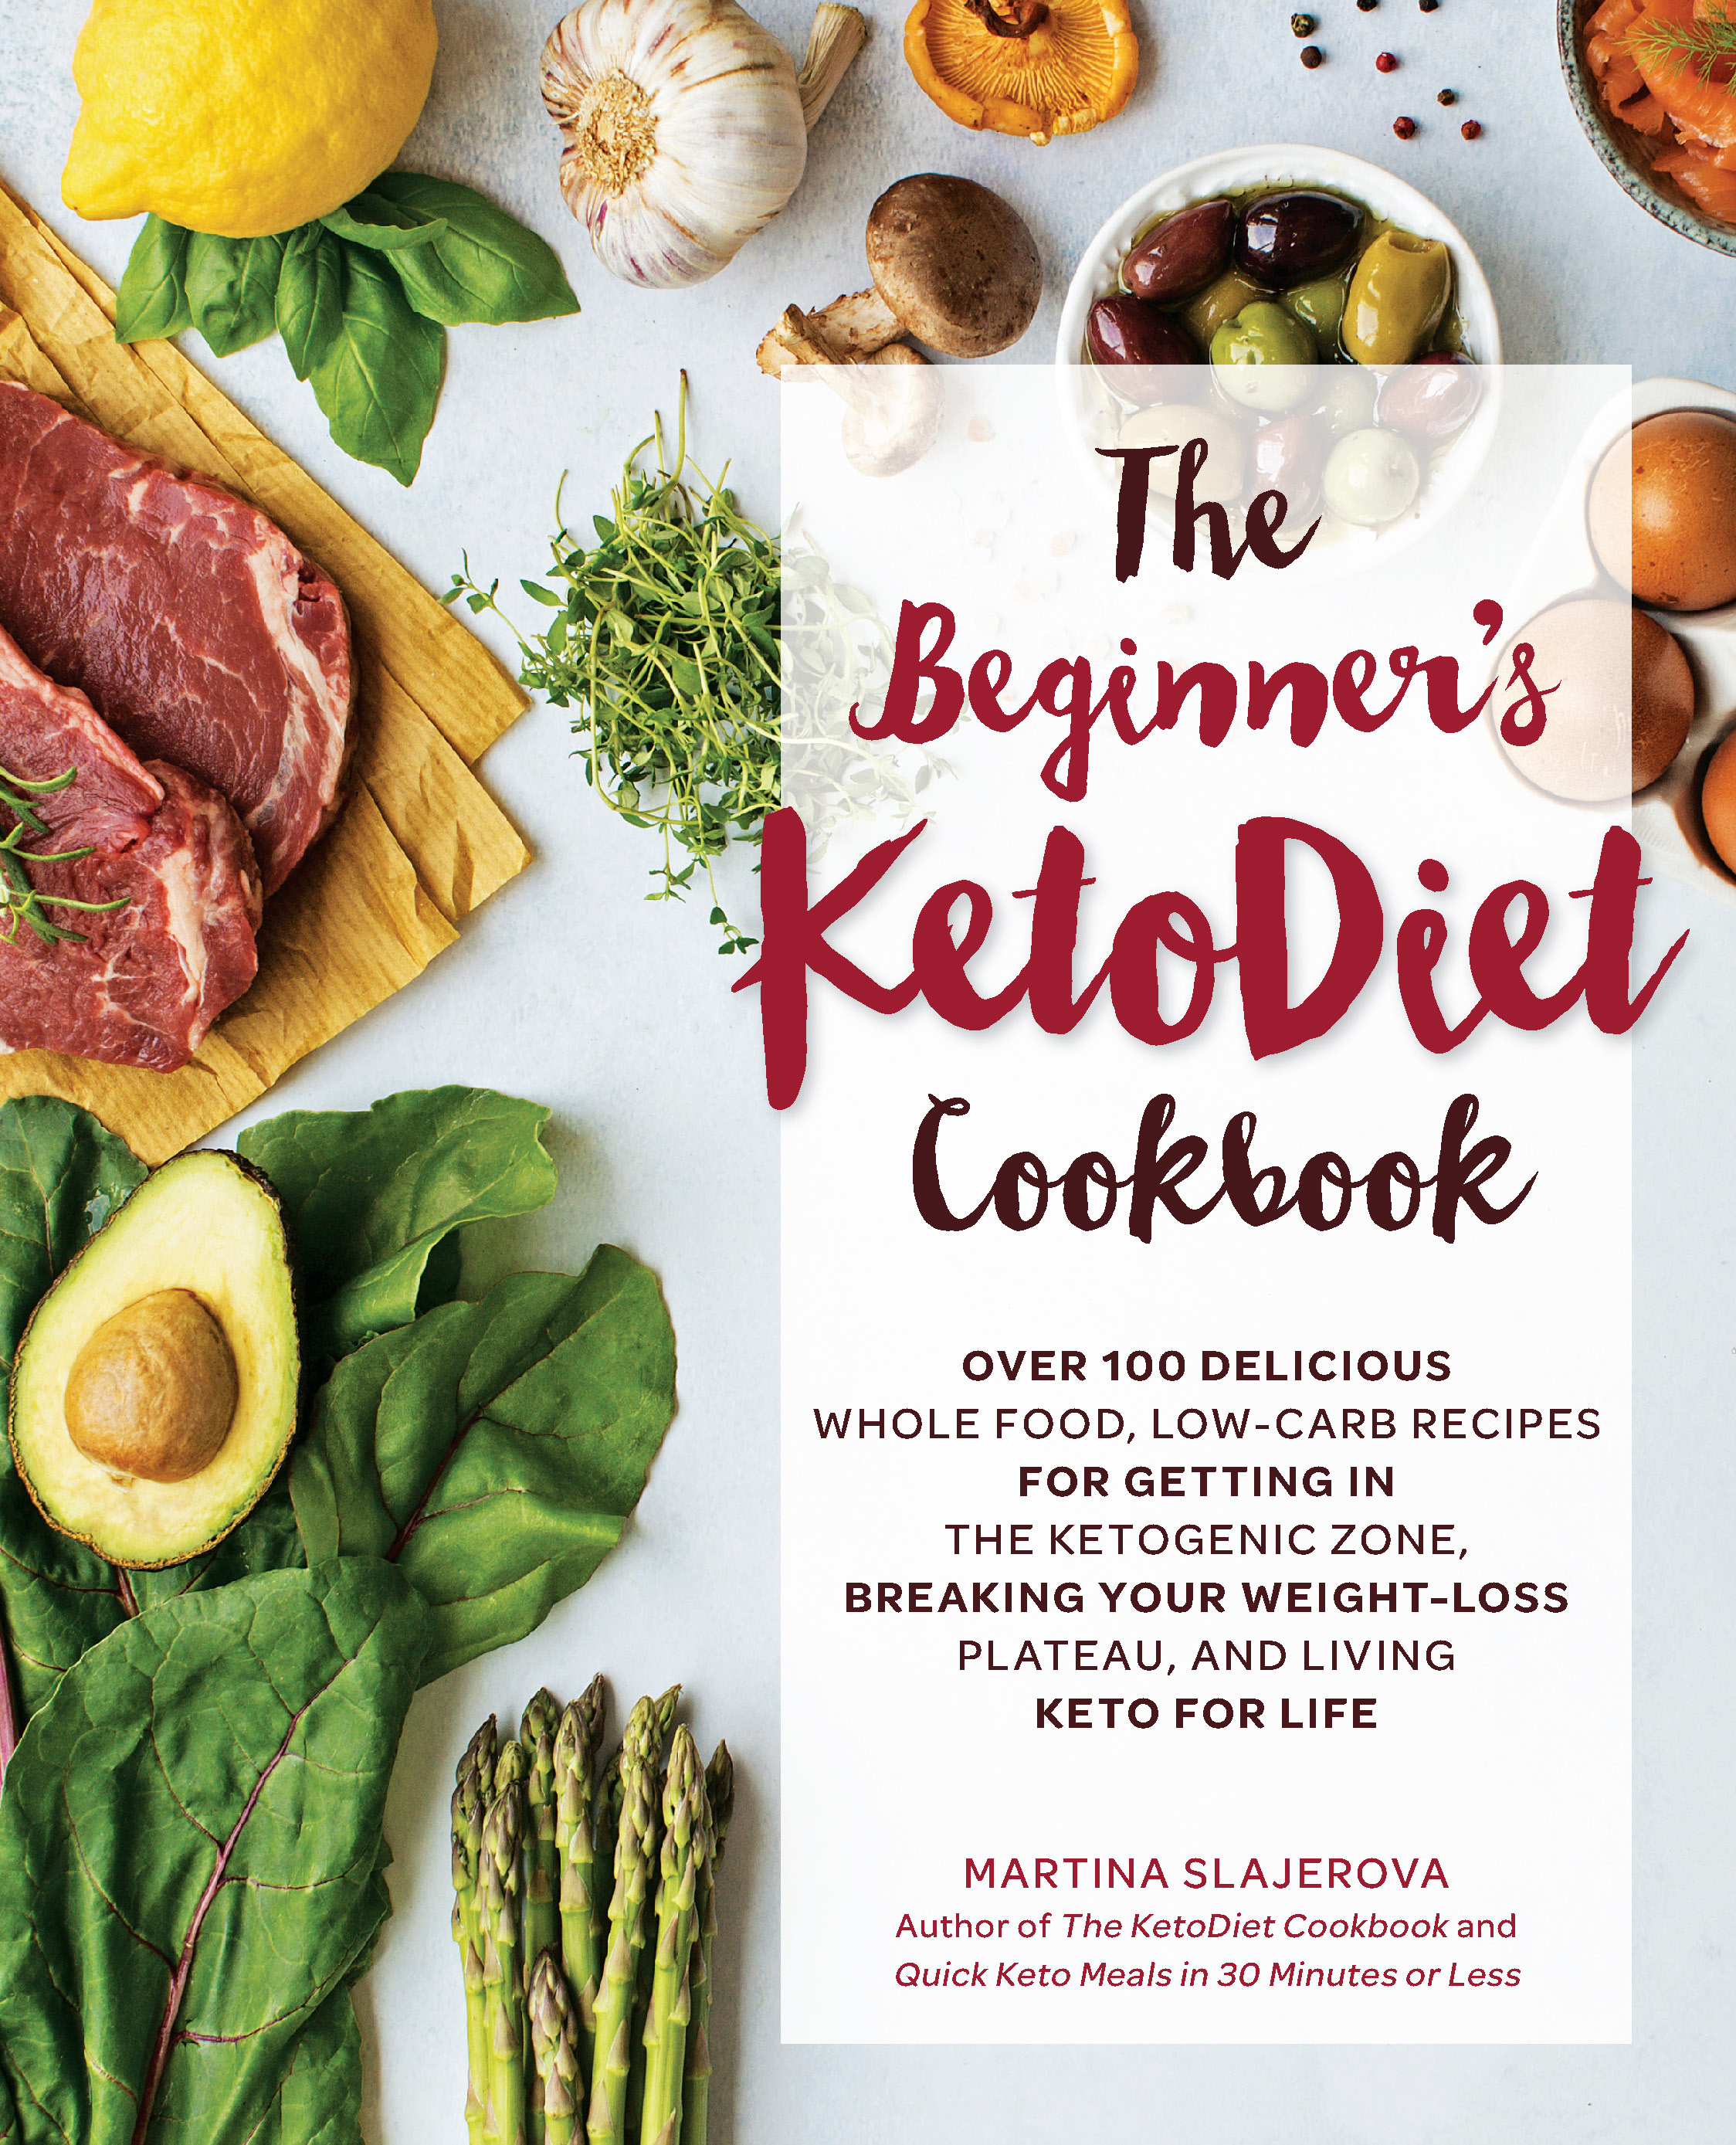 Download cover. The low carb, high fat keto diet ...